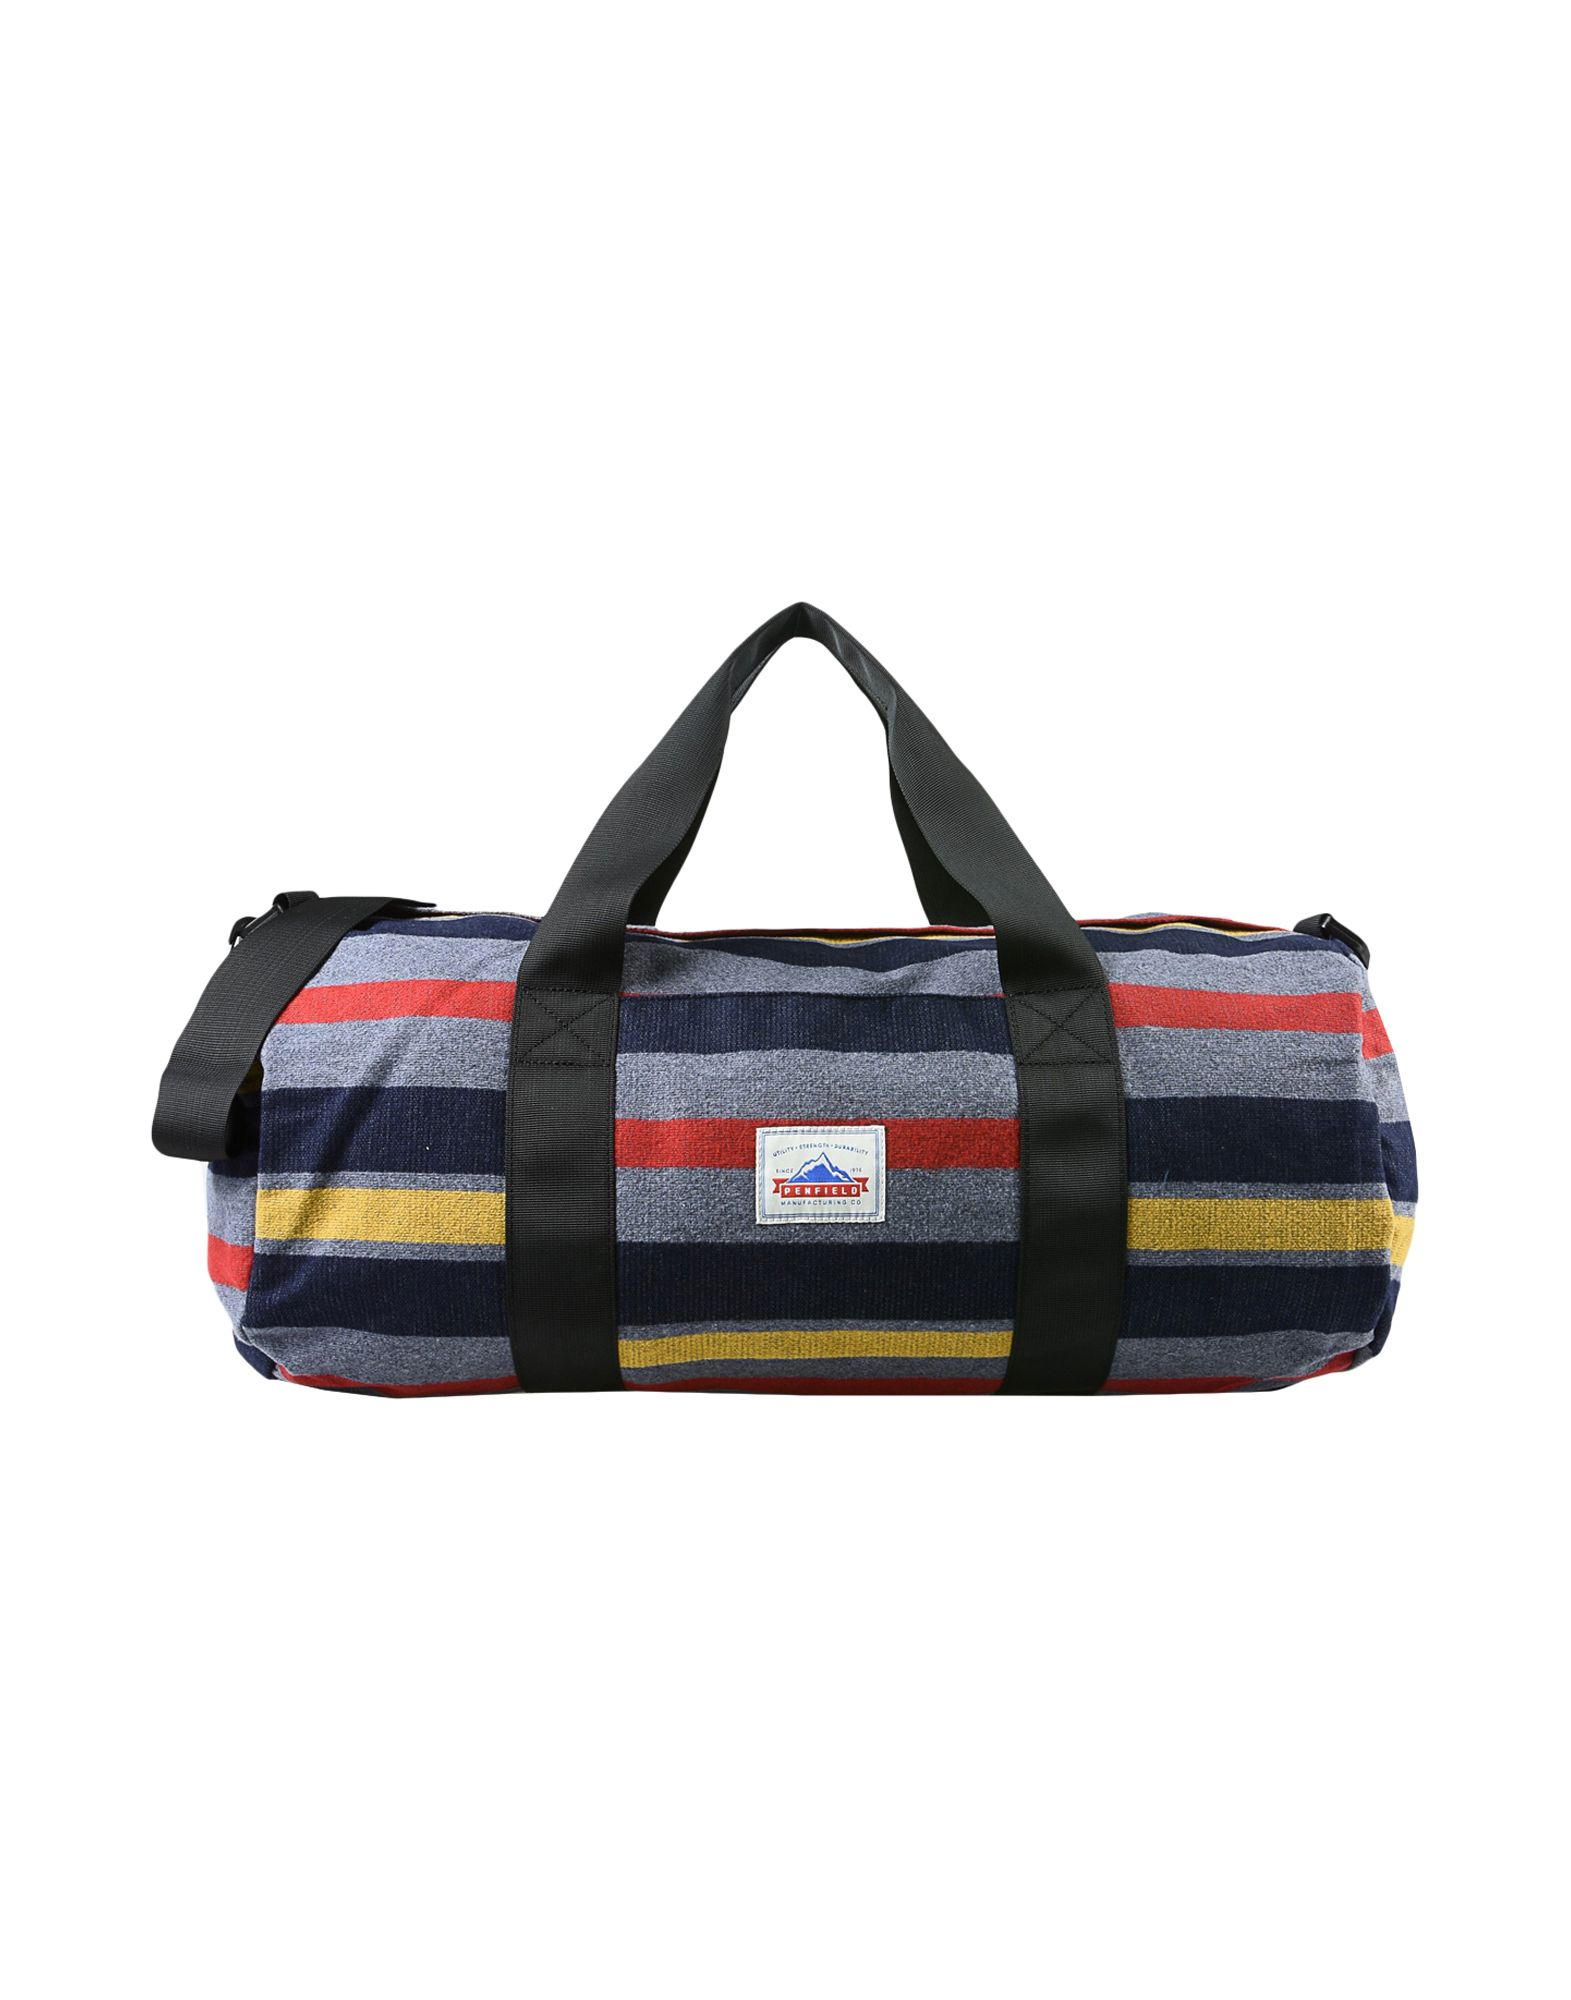 TRAVEL & DUFFEL BAGS